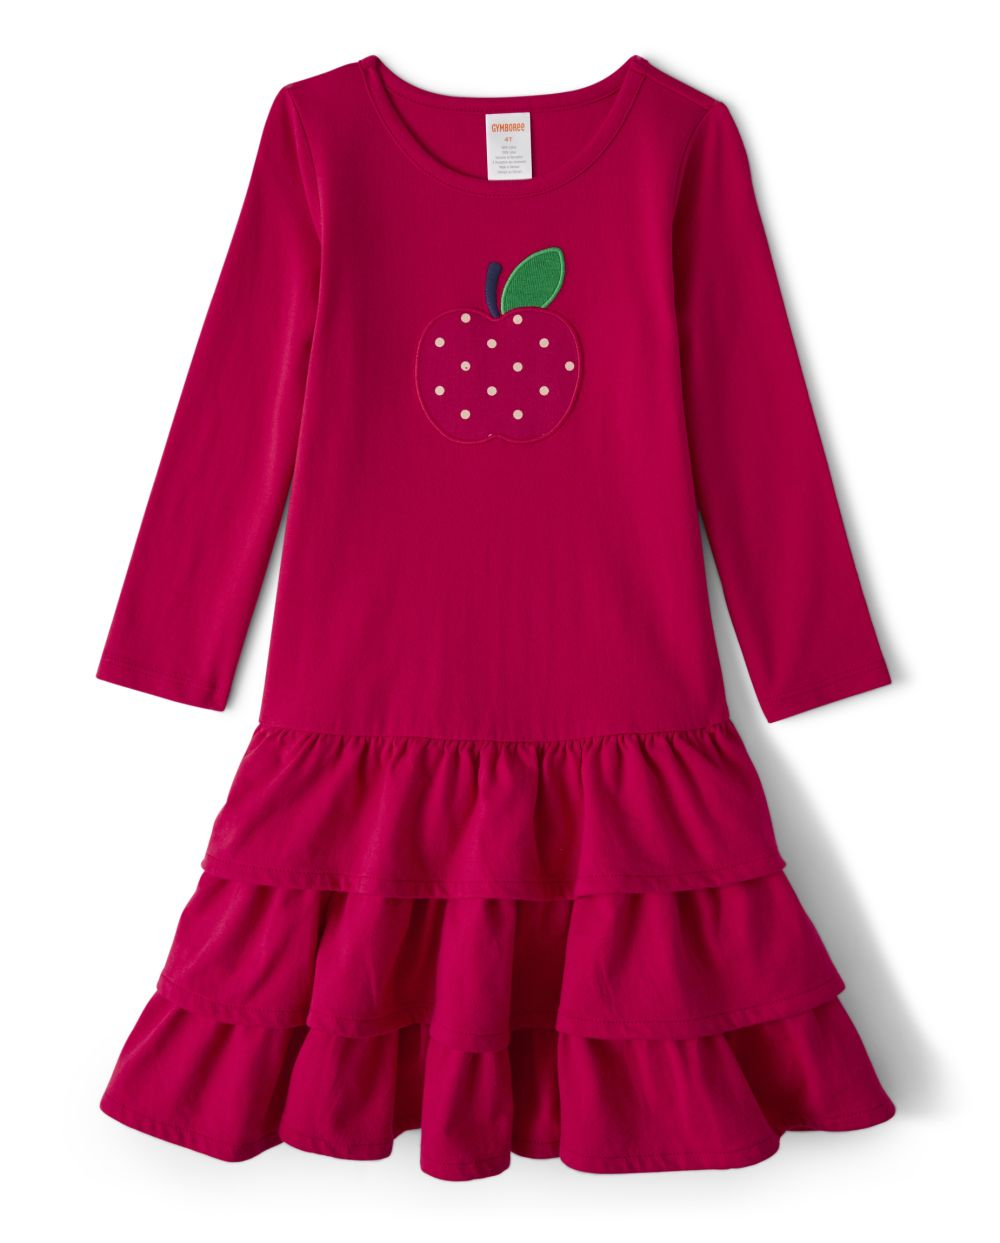 Girls Embroidered Tiered Dress - Candy Apple